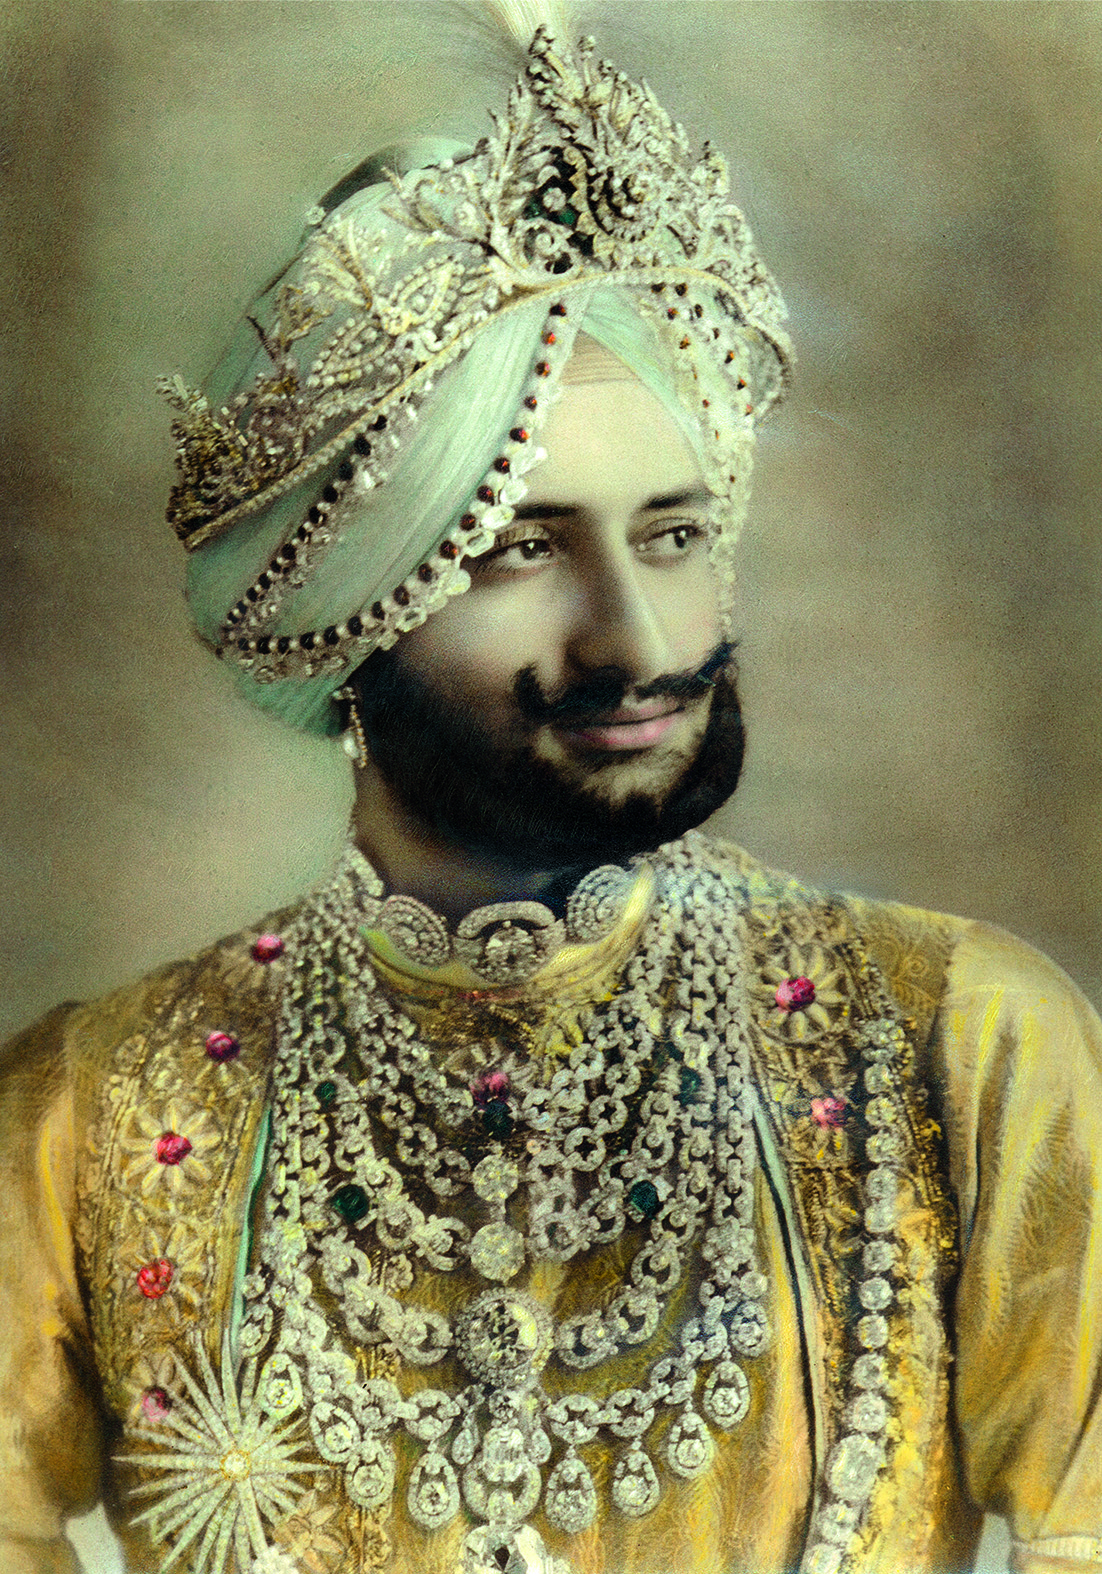 Maharajah of Patiala Wearing Cartier